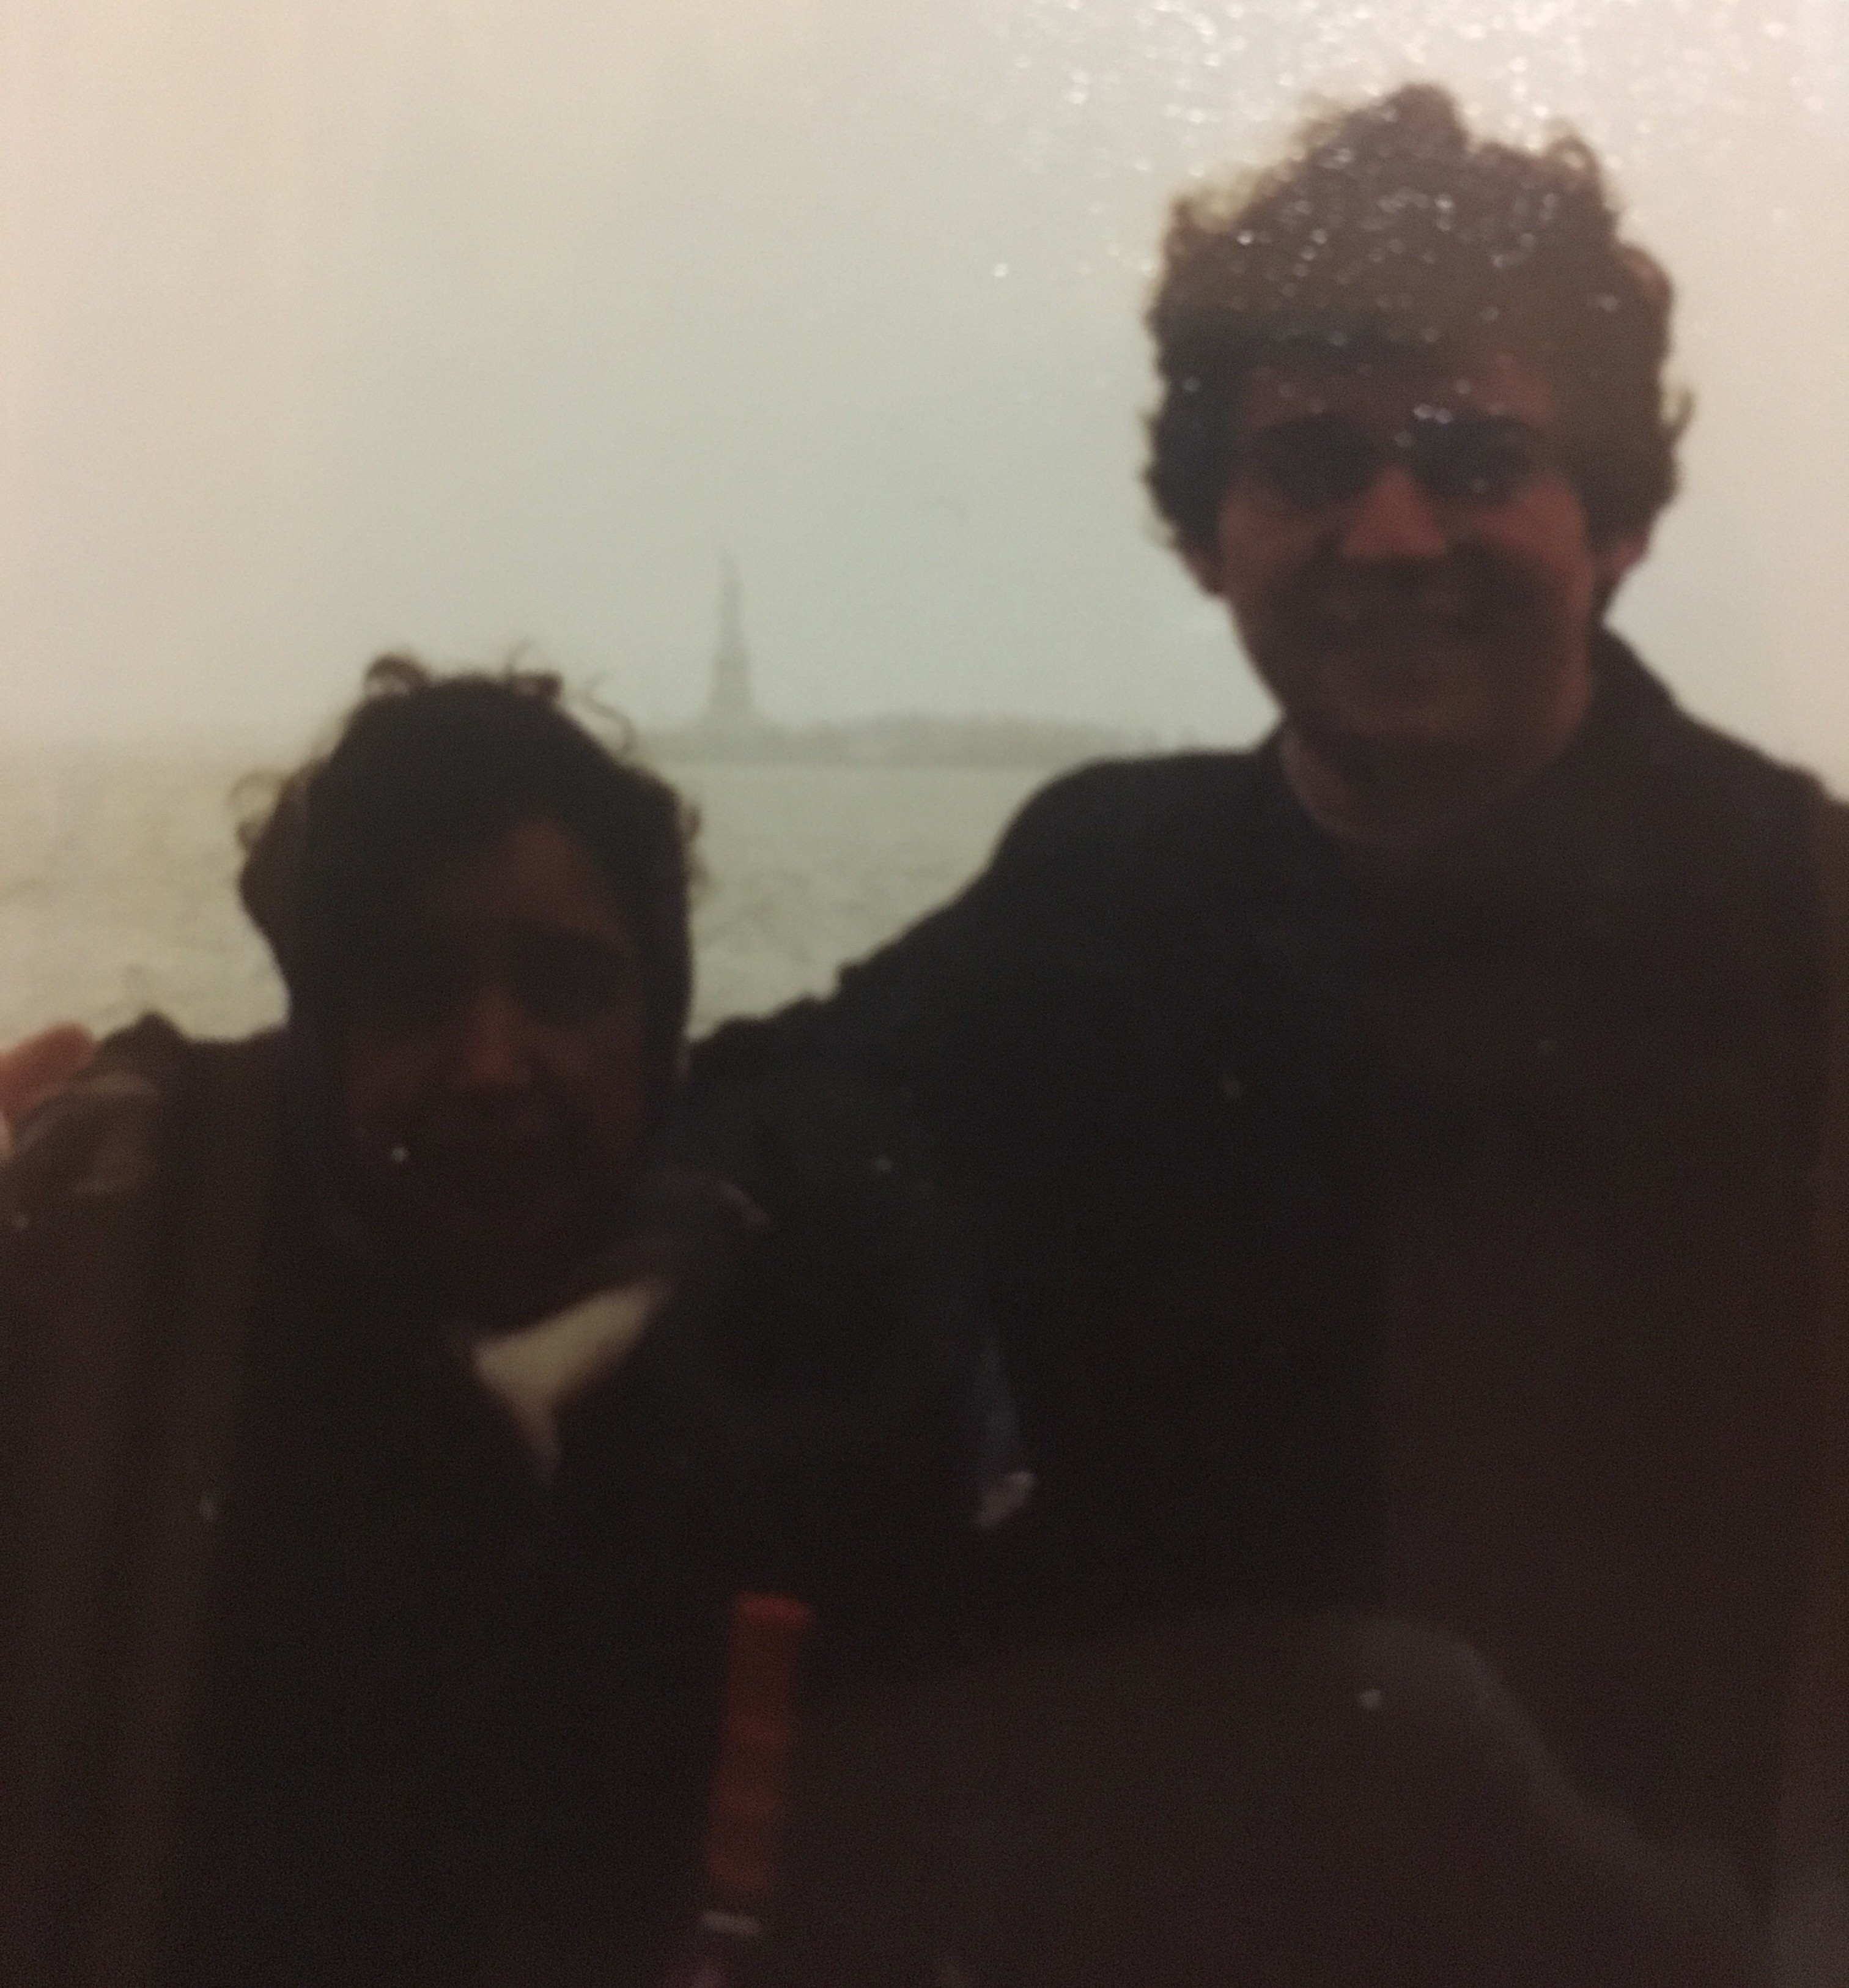 My grandmother and father at the Statue of Liberty in the early 1990s. My dad did not come to the United States by way of the New York Harbor. Nevertheless, to me, this picture still represents that he made it and that through his immigration story my own (still unborn) life as an American began.